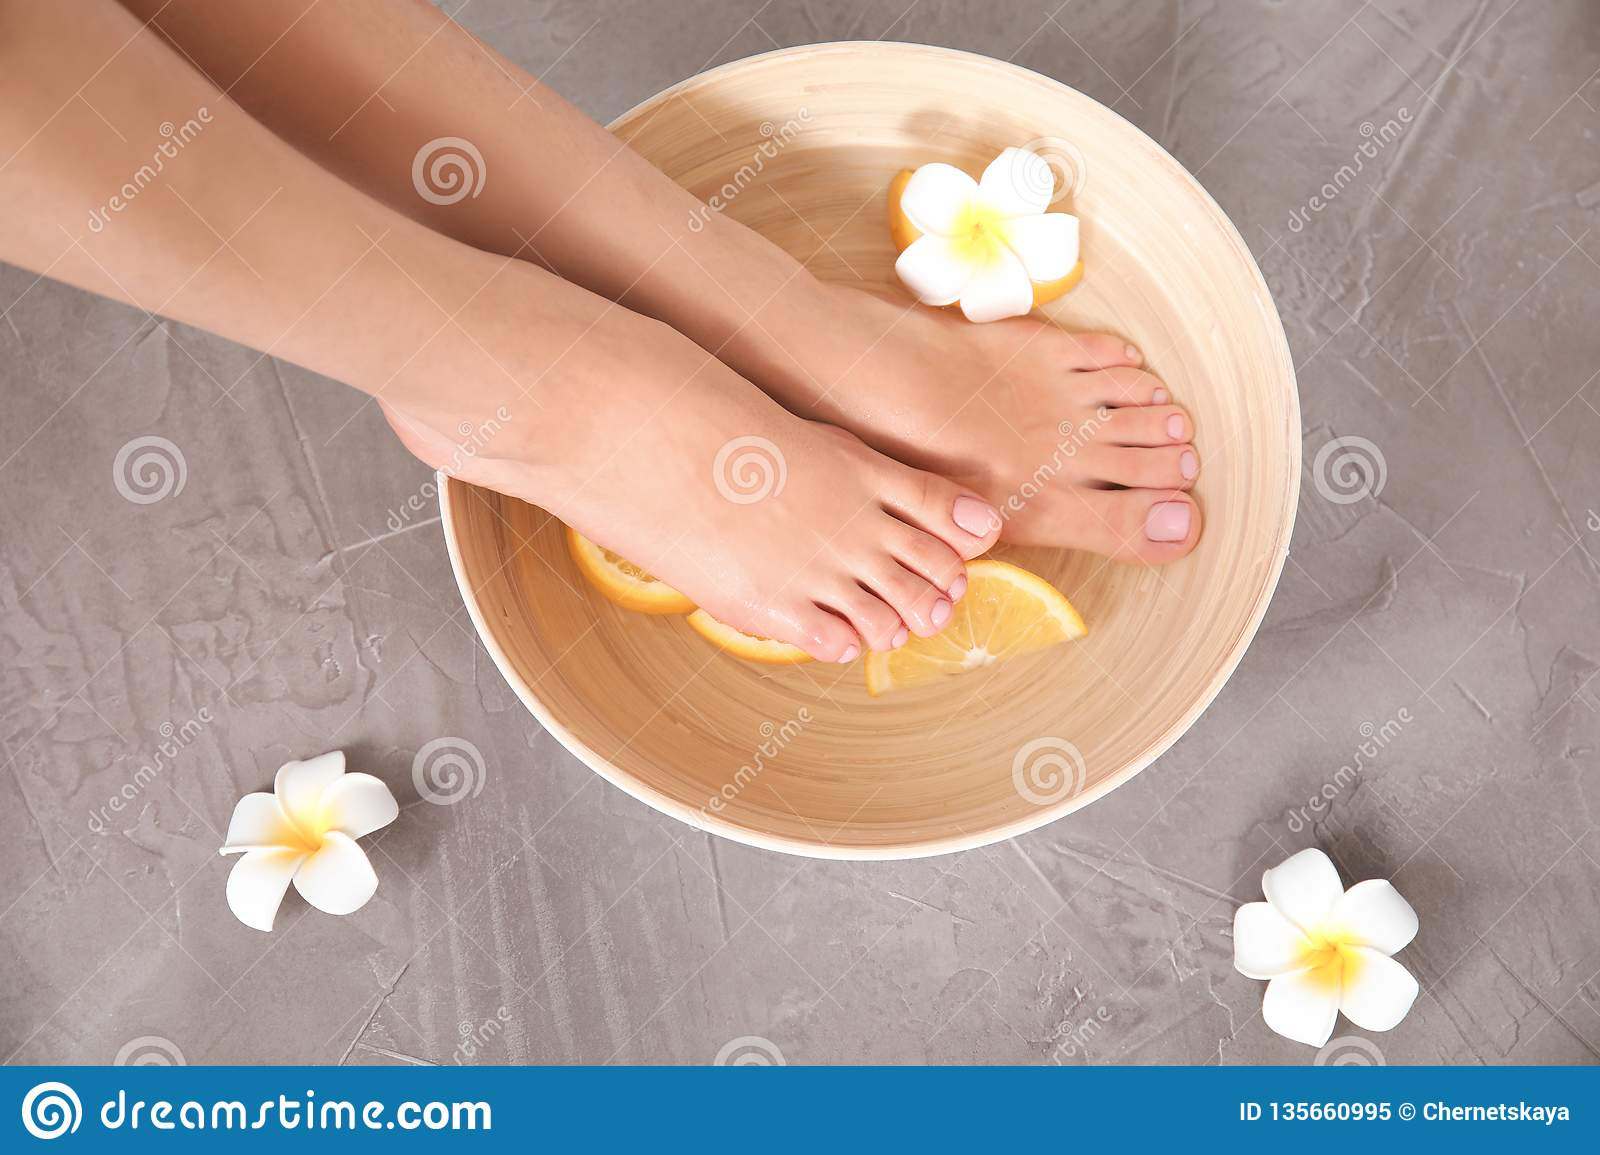 Woman soaking her feet in bowl with water, orange slices and flower on grey background, top view